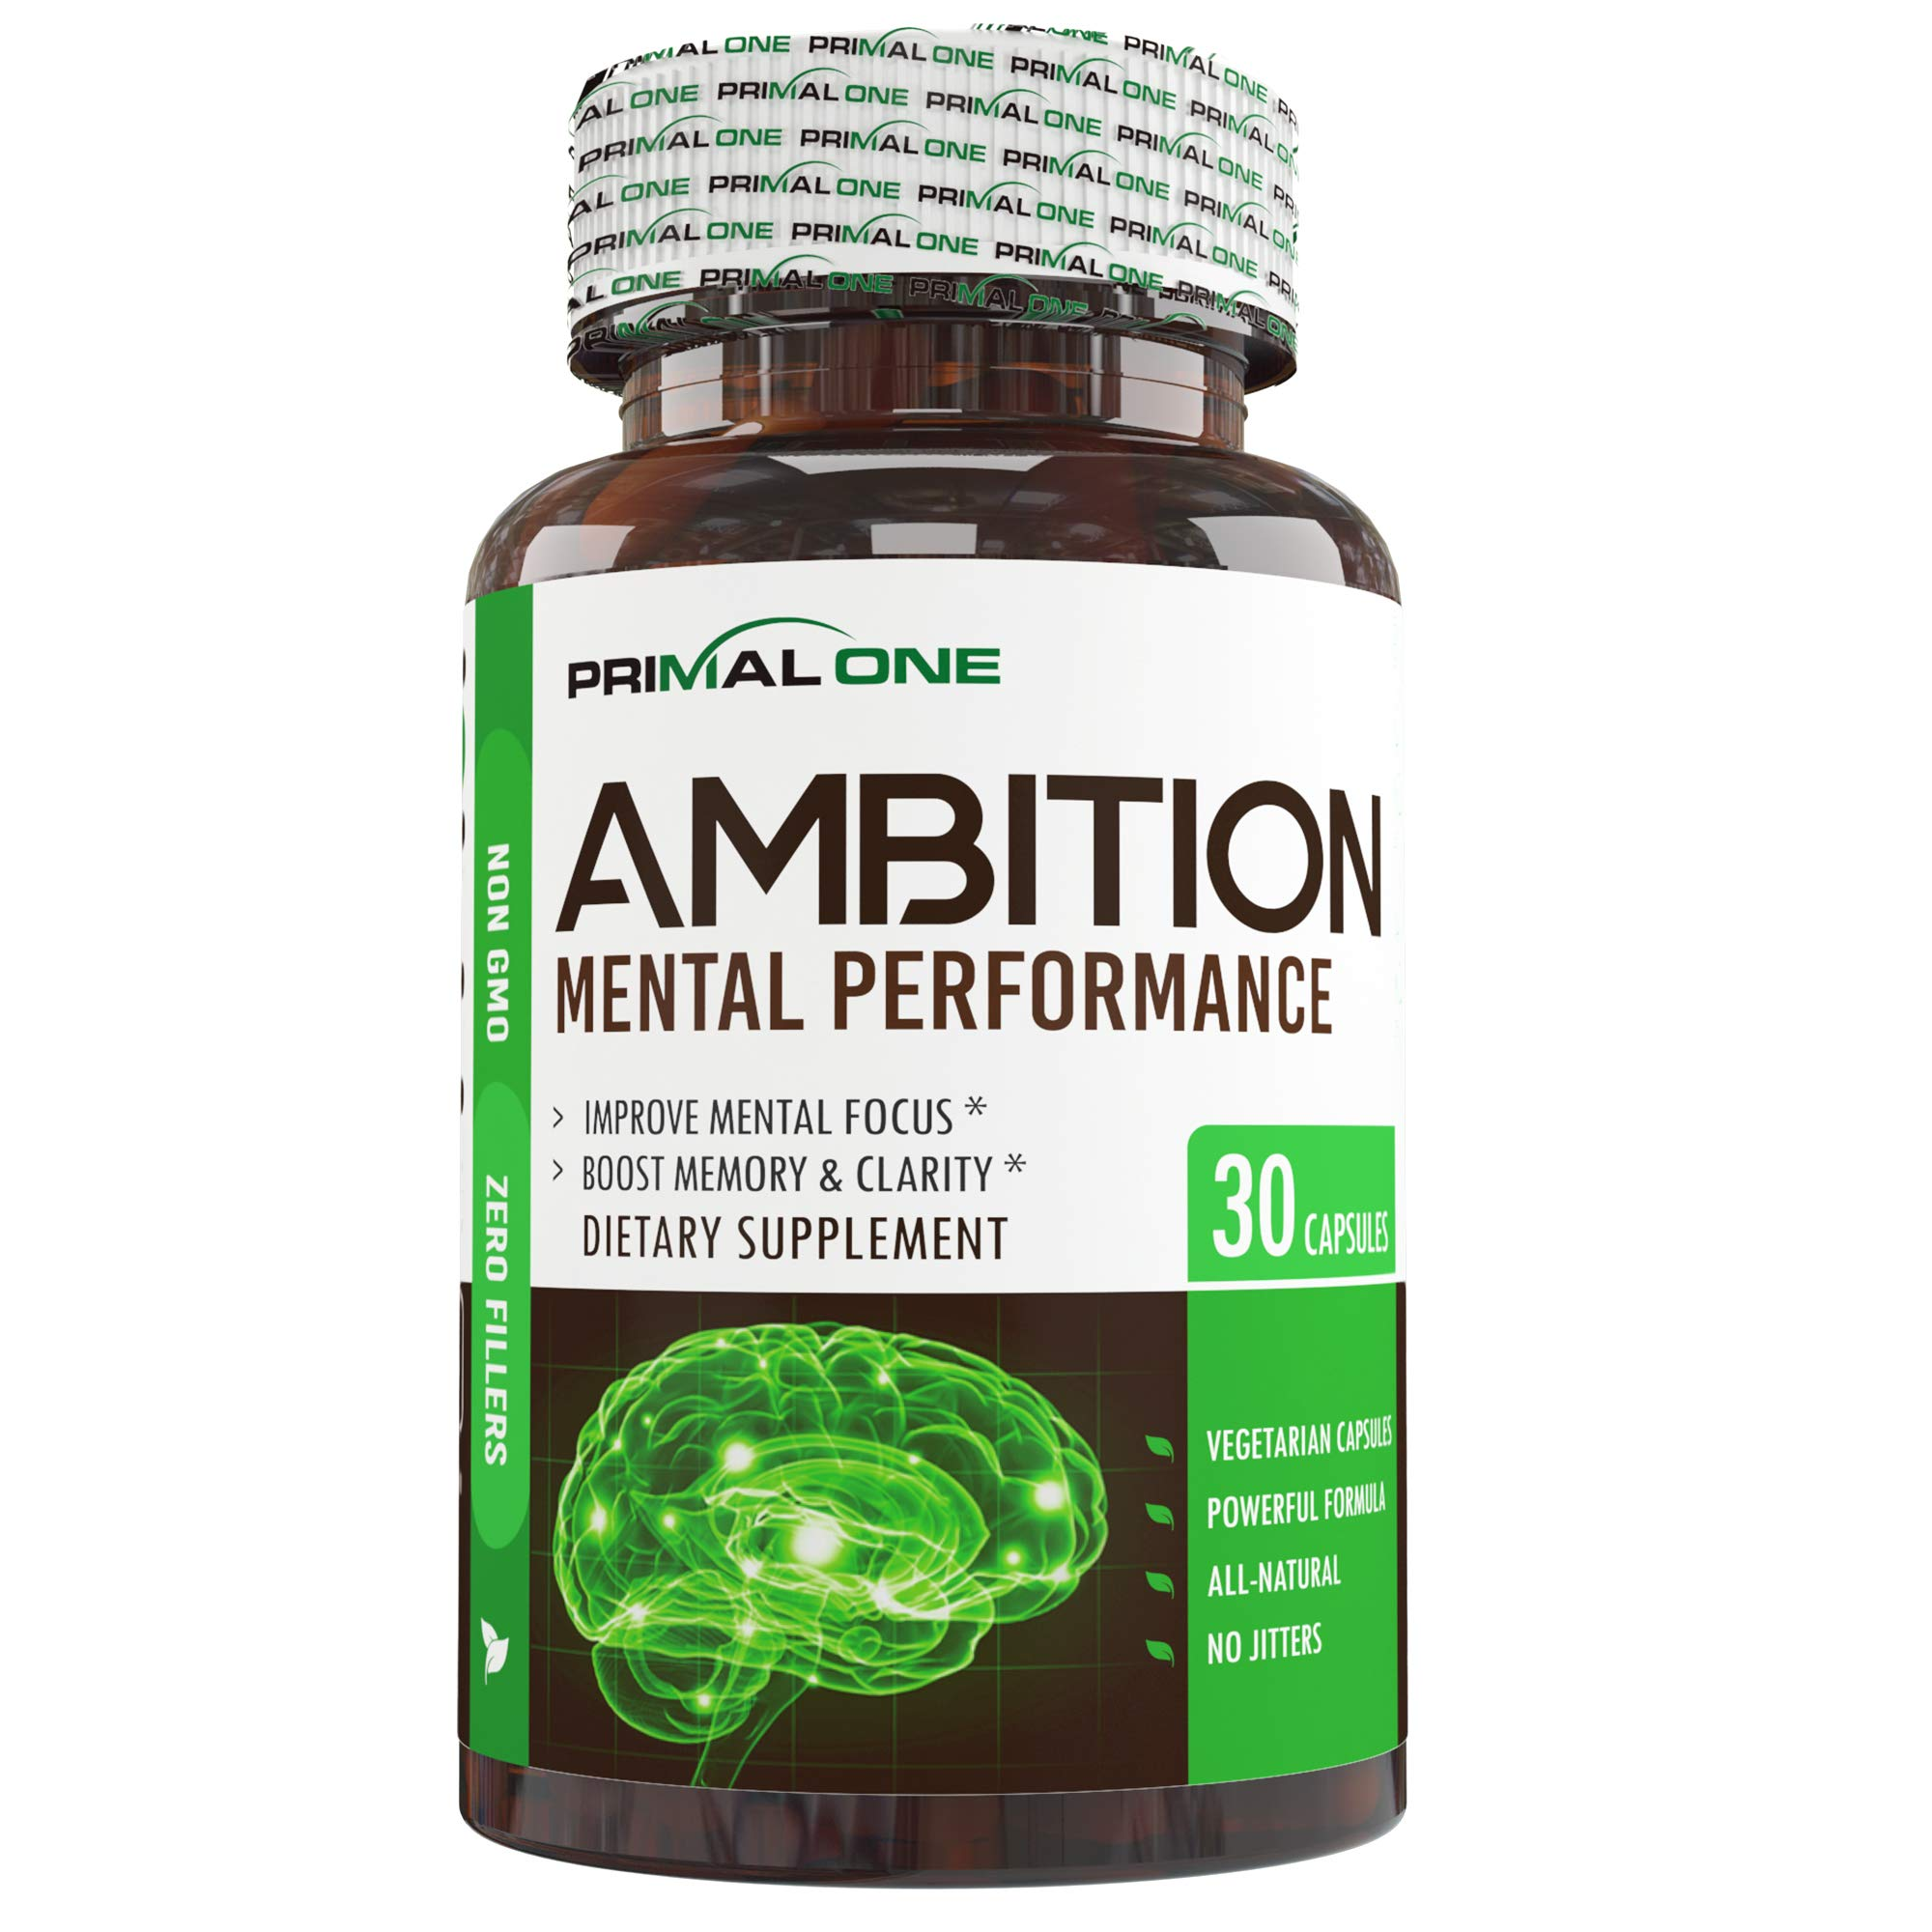 Ambition Nootropic Brain Booster Supplement - Enhance Focus, Boost Memory & Clarity - Achieve Peak Mental Performance w/CDP Choline, Neurofactor, More - 30 Natural Veggie Pills by Primal One (Image #2)